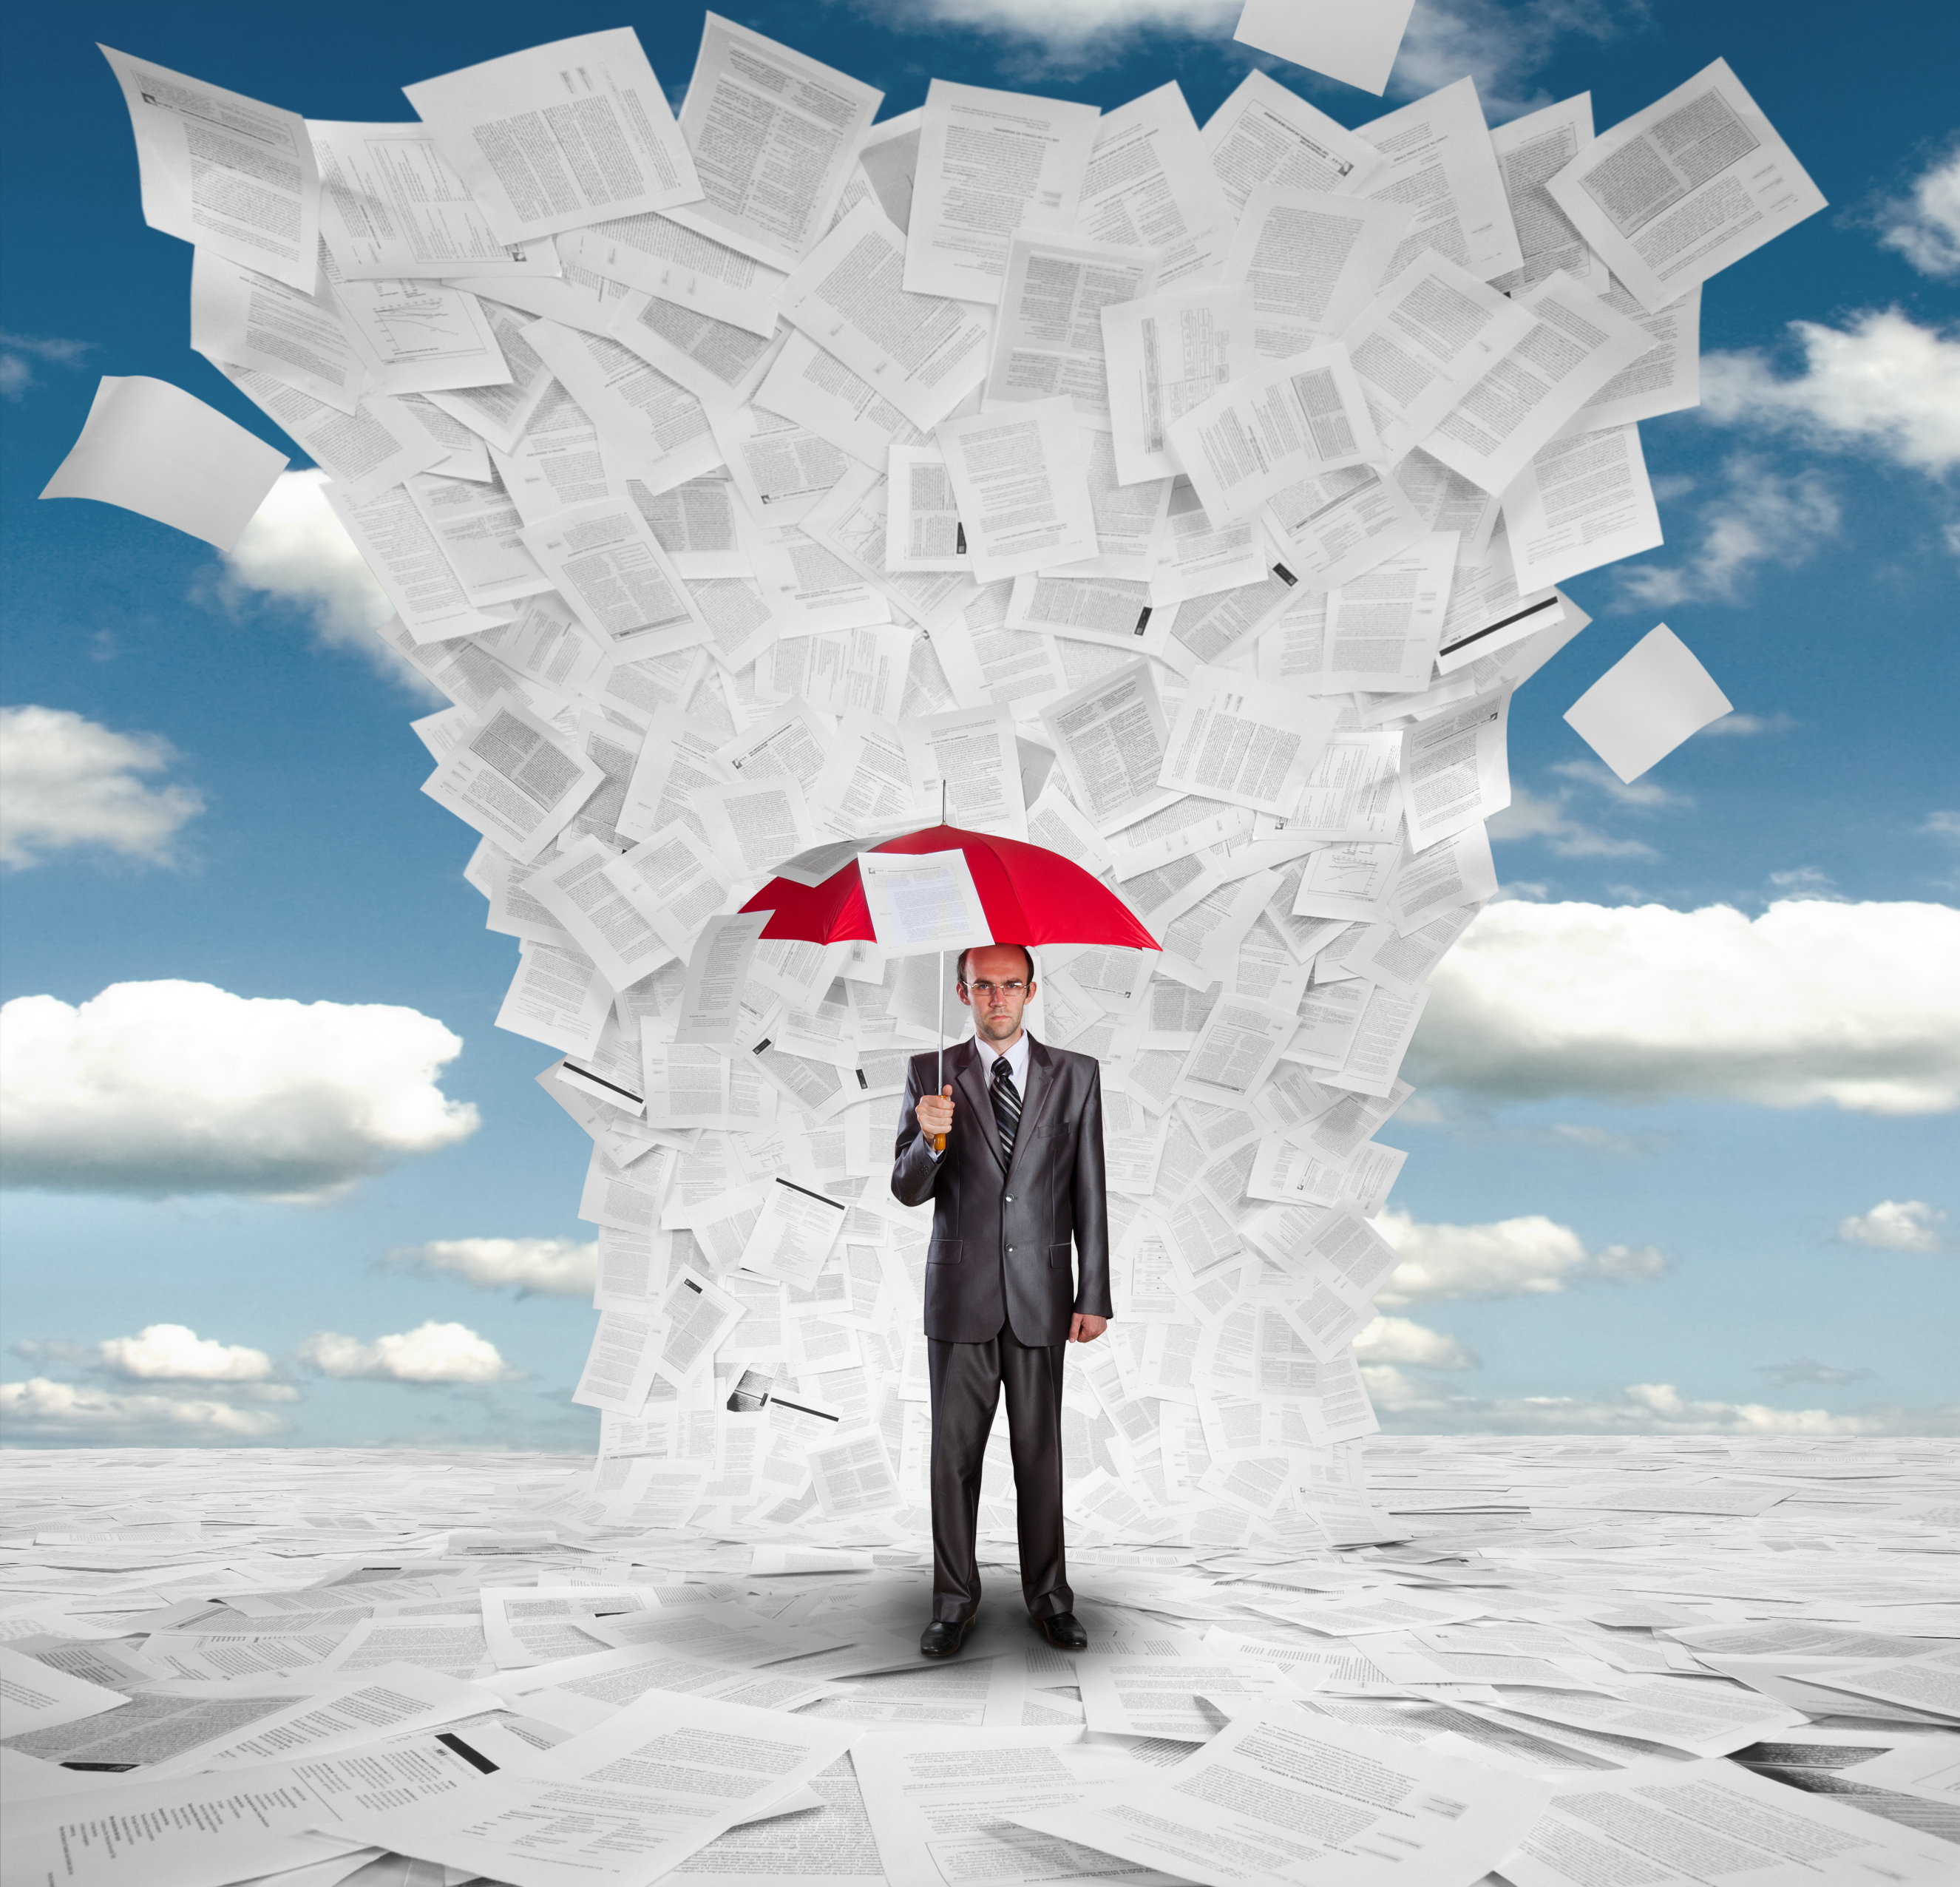 bigstock-Businessman-With-Red-Umbrella--23108744